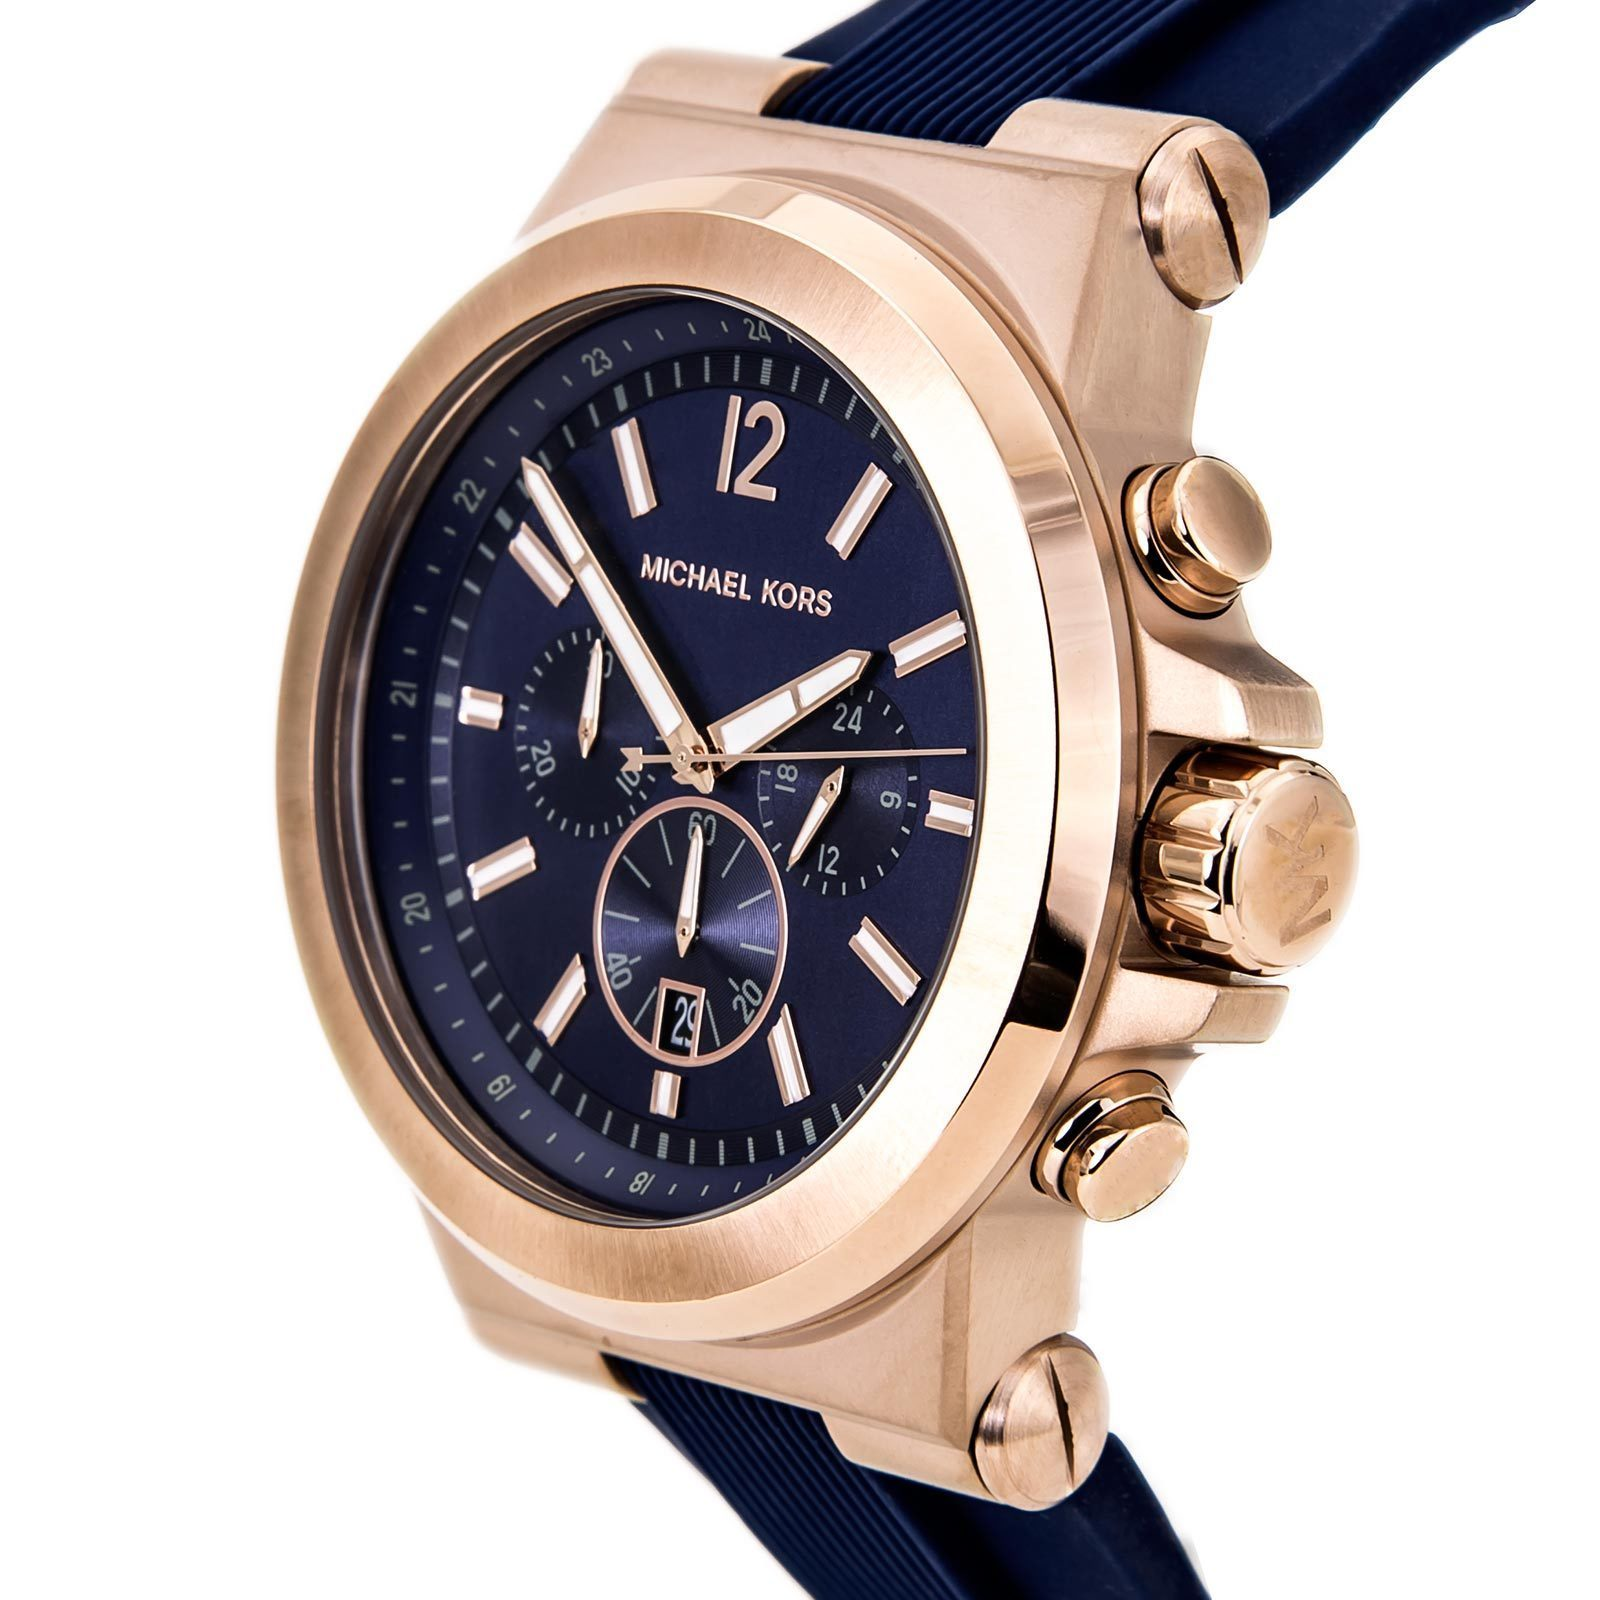 fa9790cc4287 Shop Michael Kors Men s MK8295  Dylan  Rose-tone Ion Plated Stainless Steel  Watch - Free Shipping Today - Overstock - 8643242